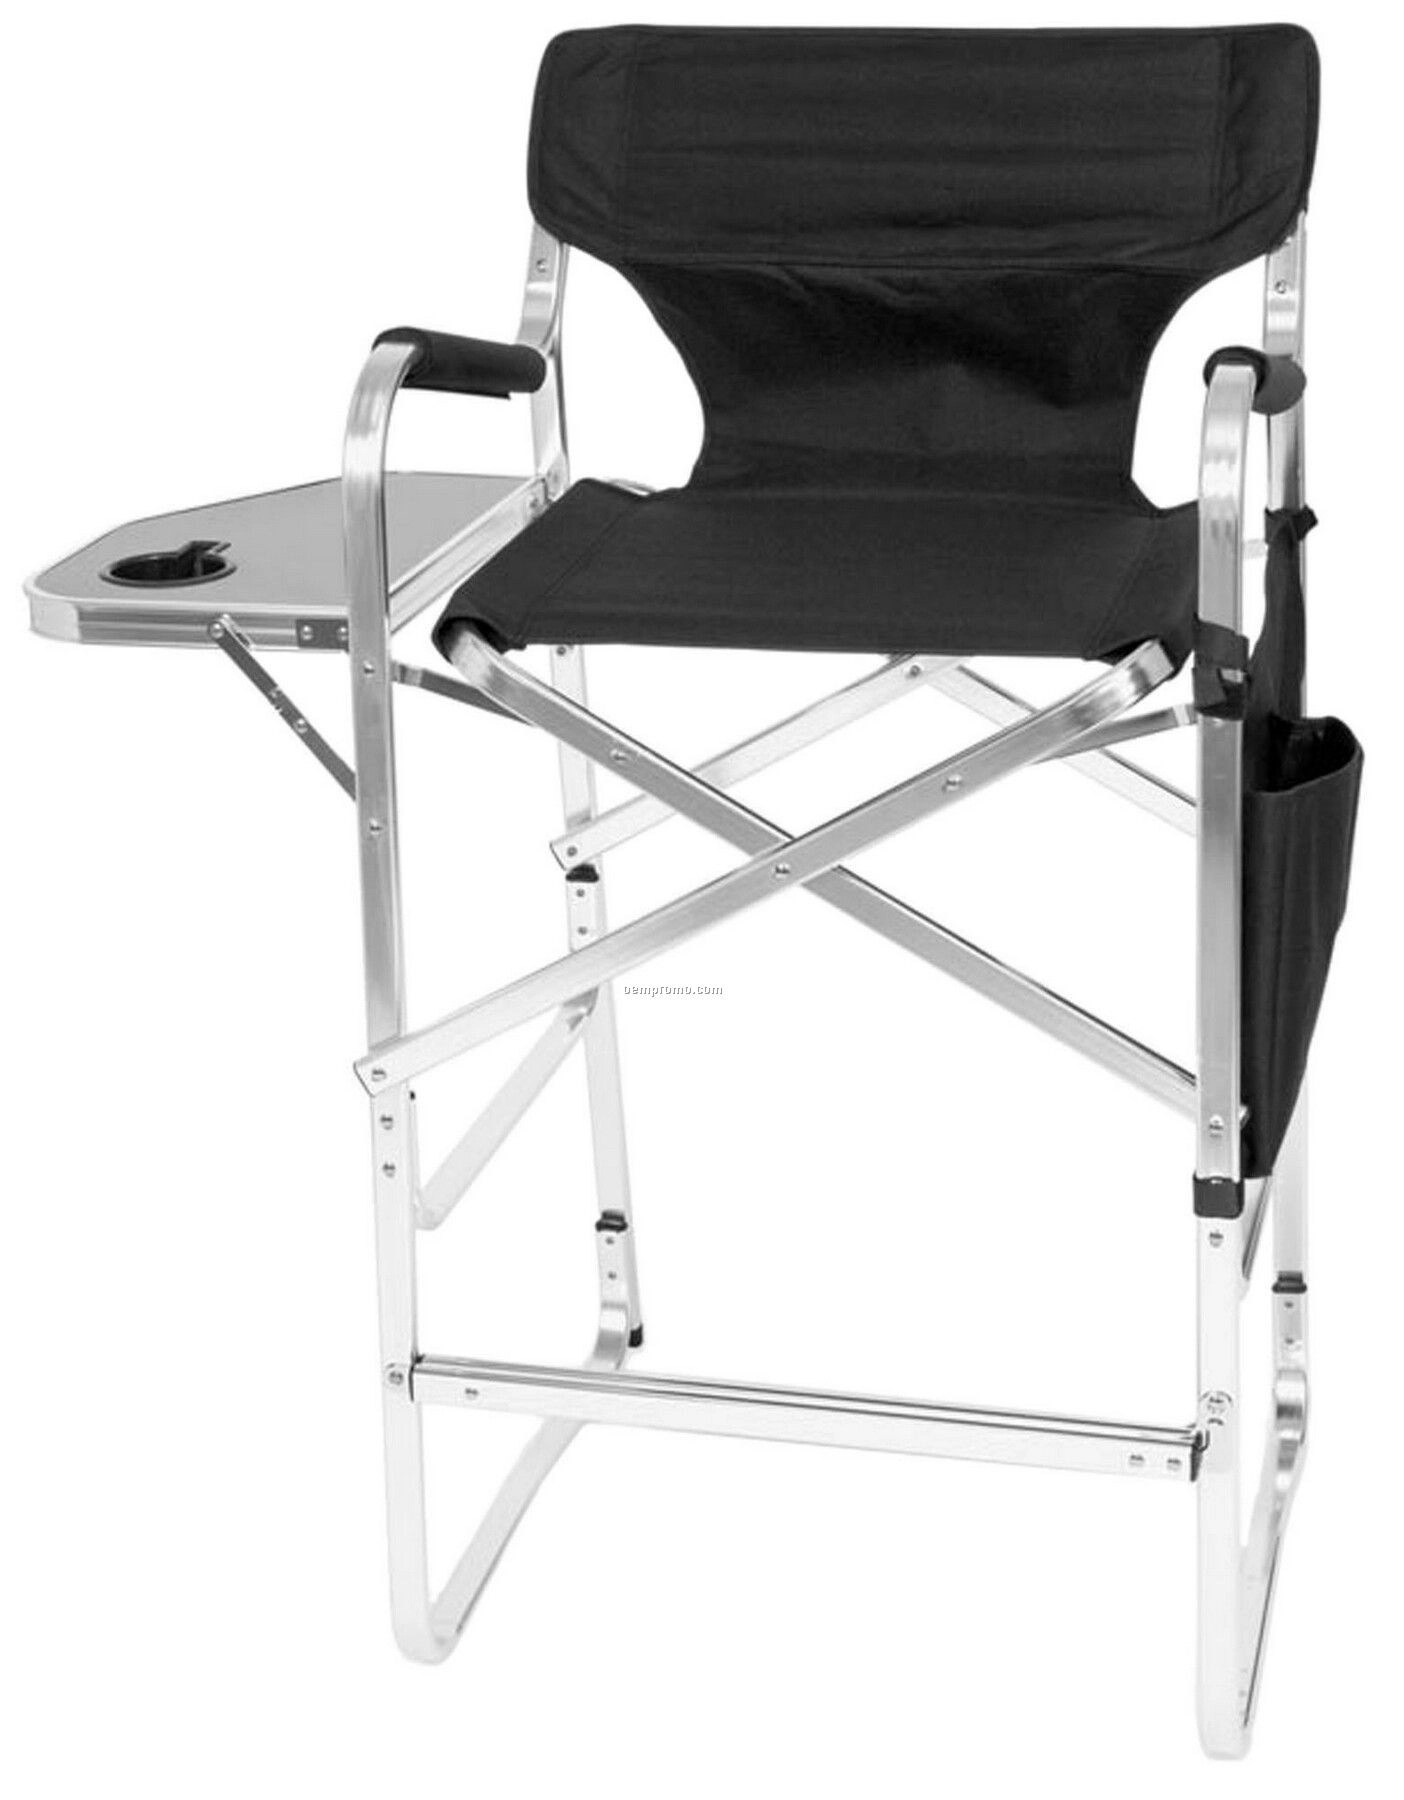 directors chair covers big w the chronicles of narnia silver cast aluminum chairs ideas on foter 2